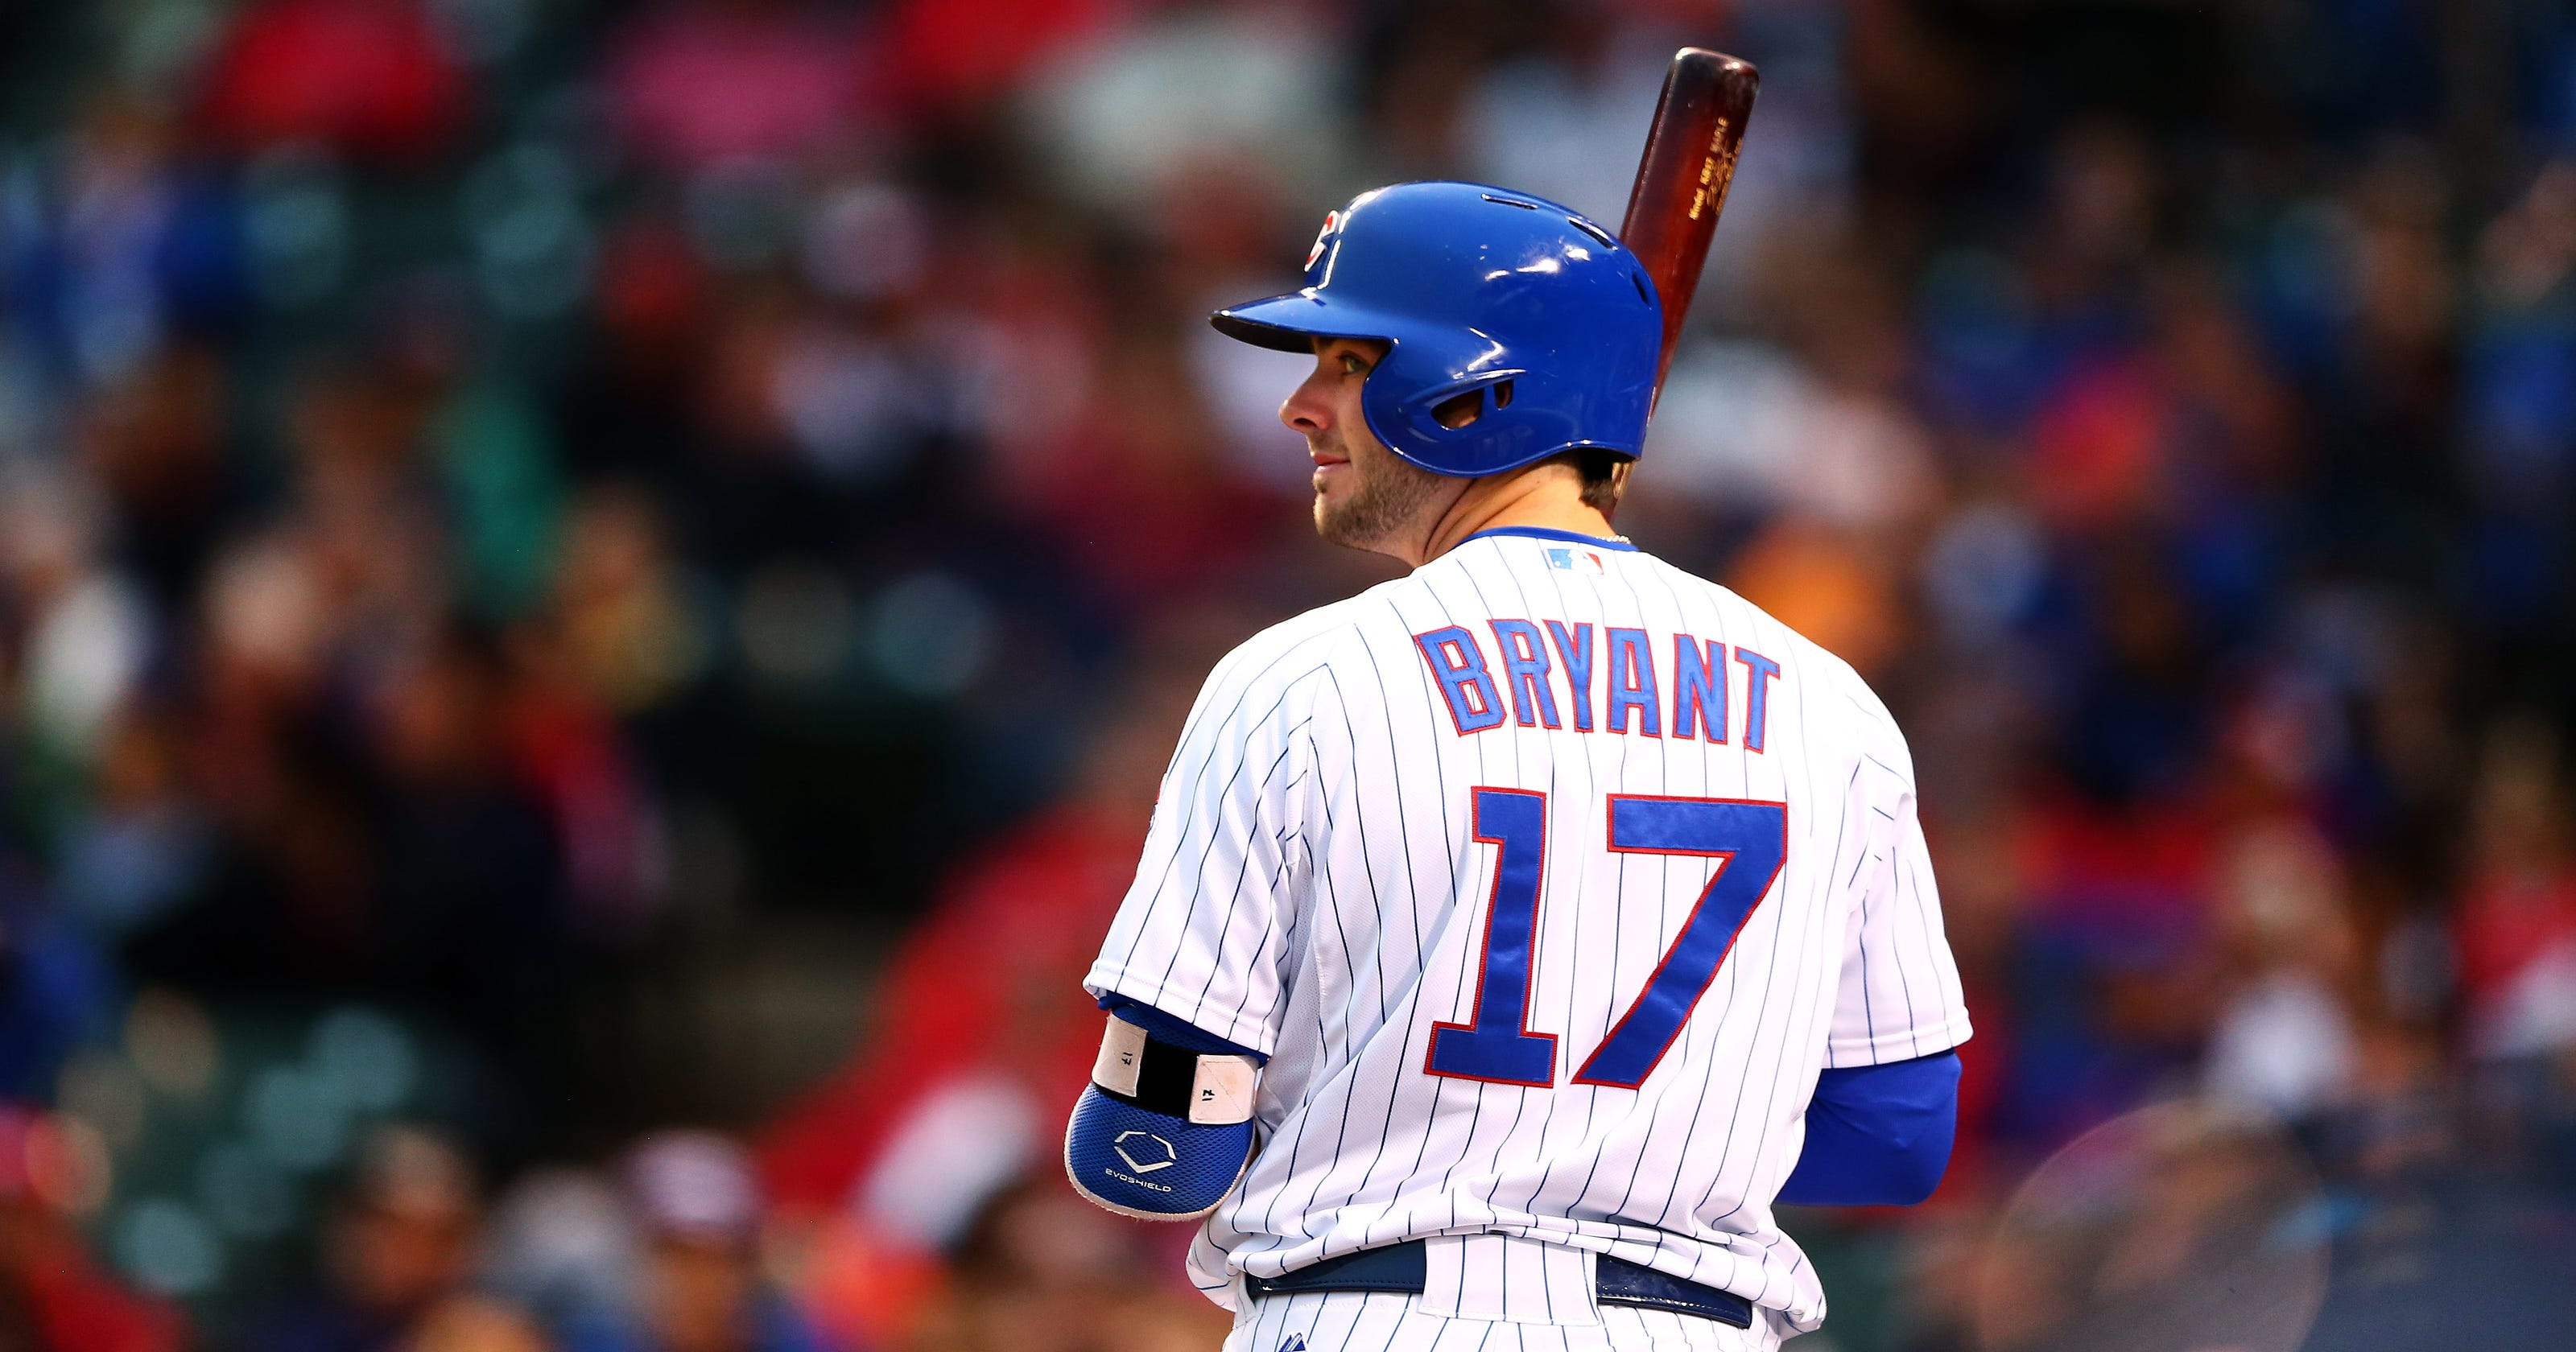 Cubs rookie Kris Bryant has top selling jersey in MLB c1b4f24c5